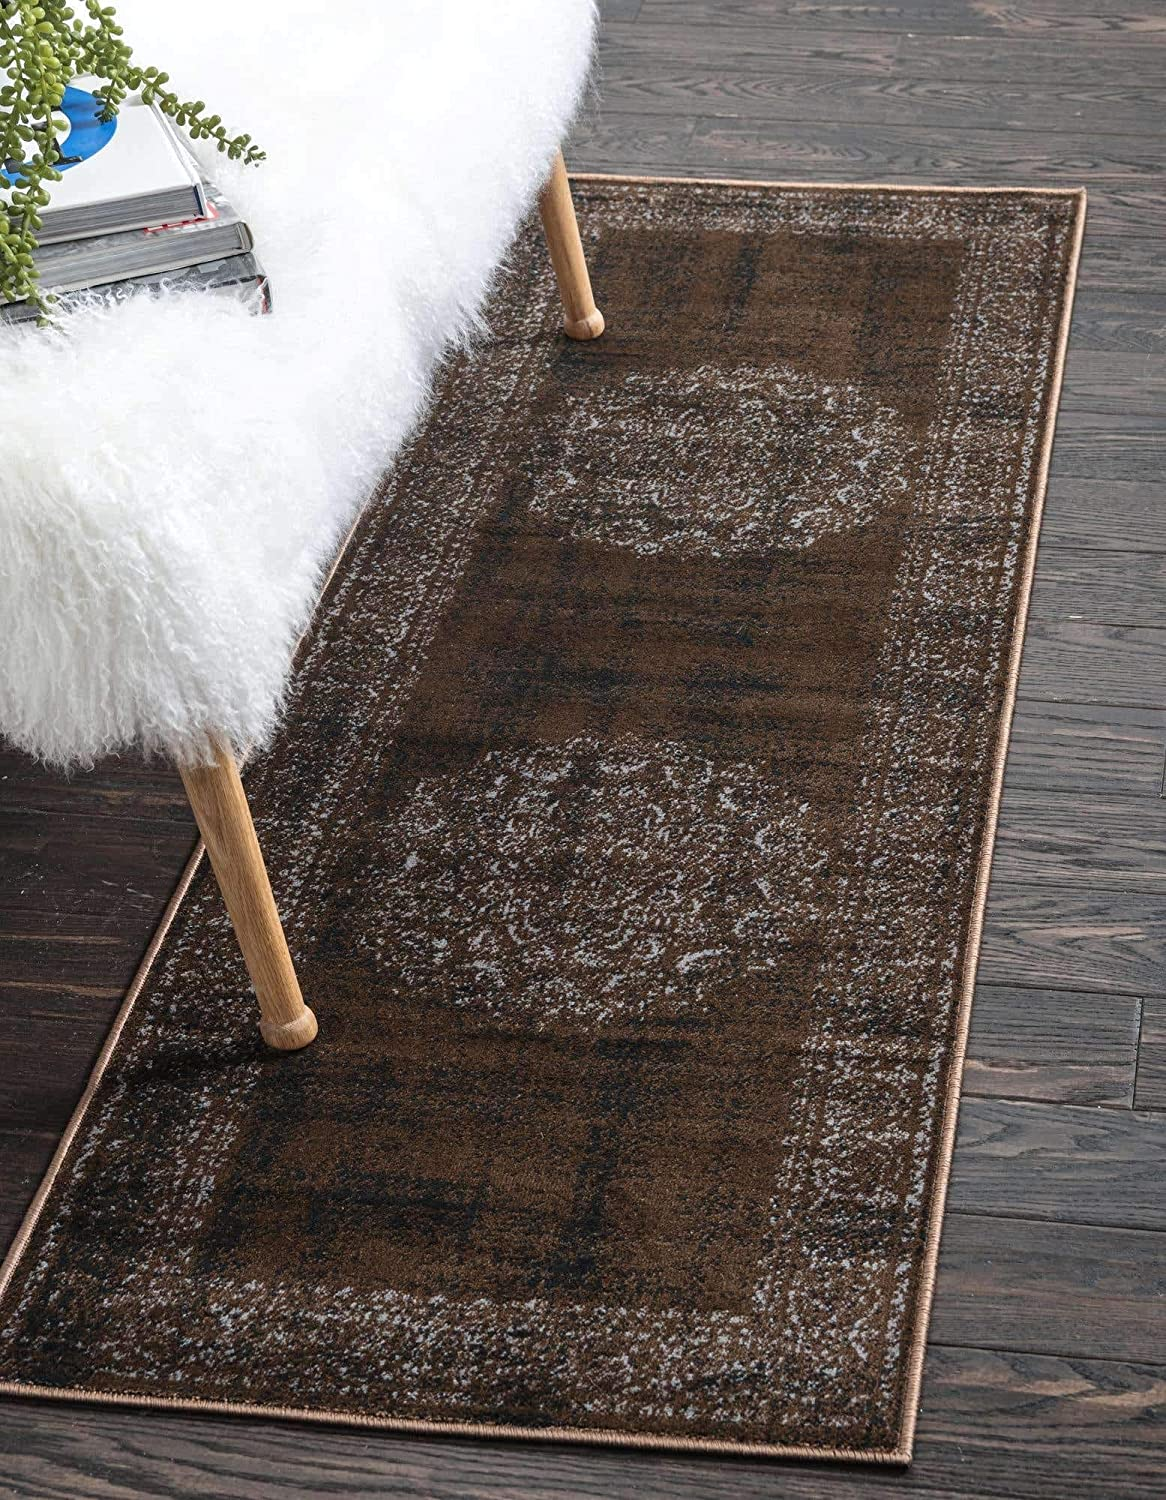 Unique Loom Imperial Collection Modern Traditional Vintage Distressed Chocolate Brown Runner Rug (3' 0 x 9' 10)